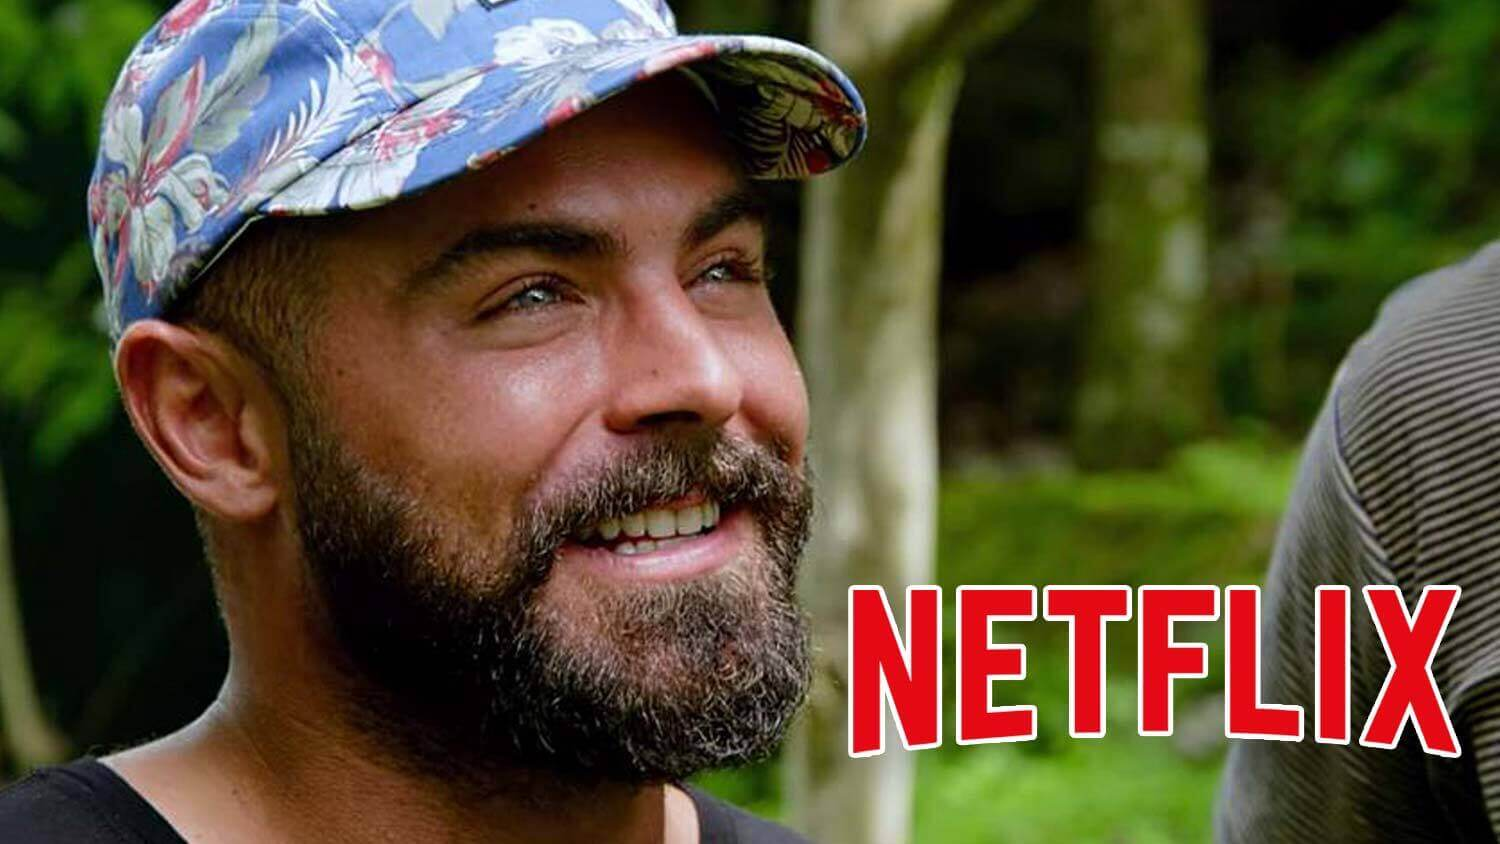 Zac Efron's Netflix Series 'Down to Earth' Examines the Climate Crisis